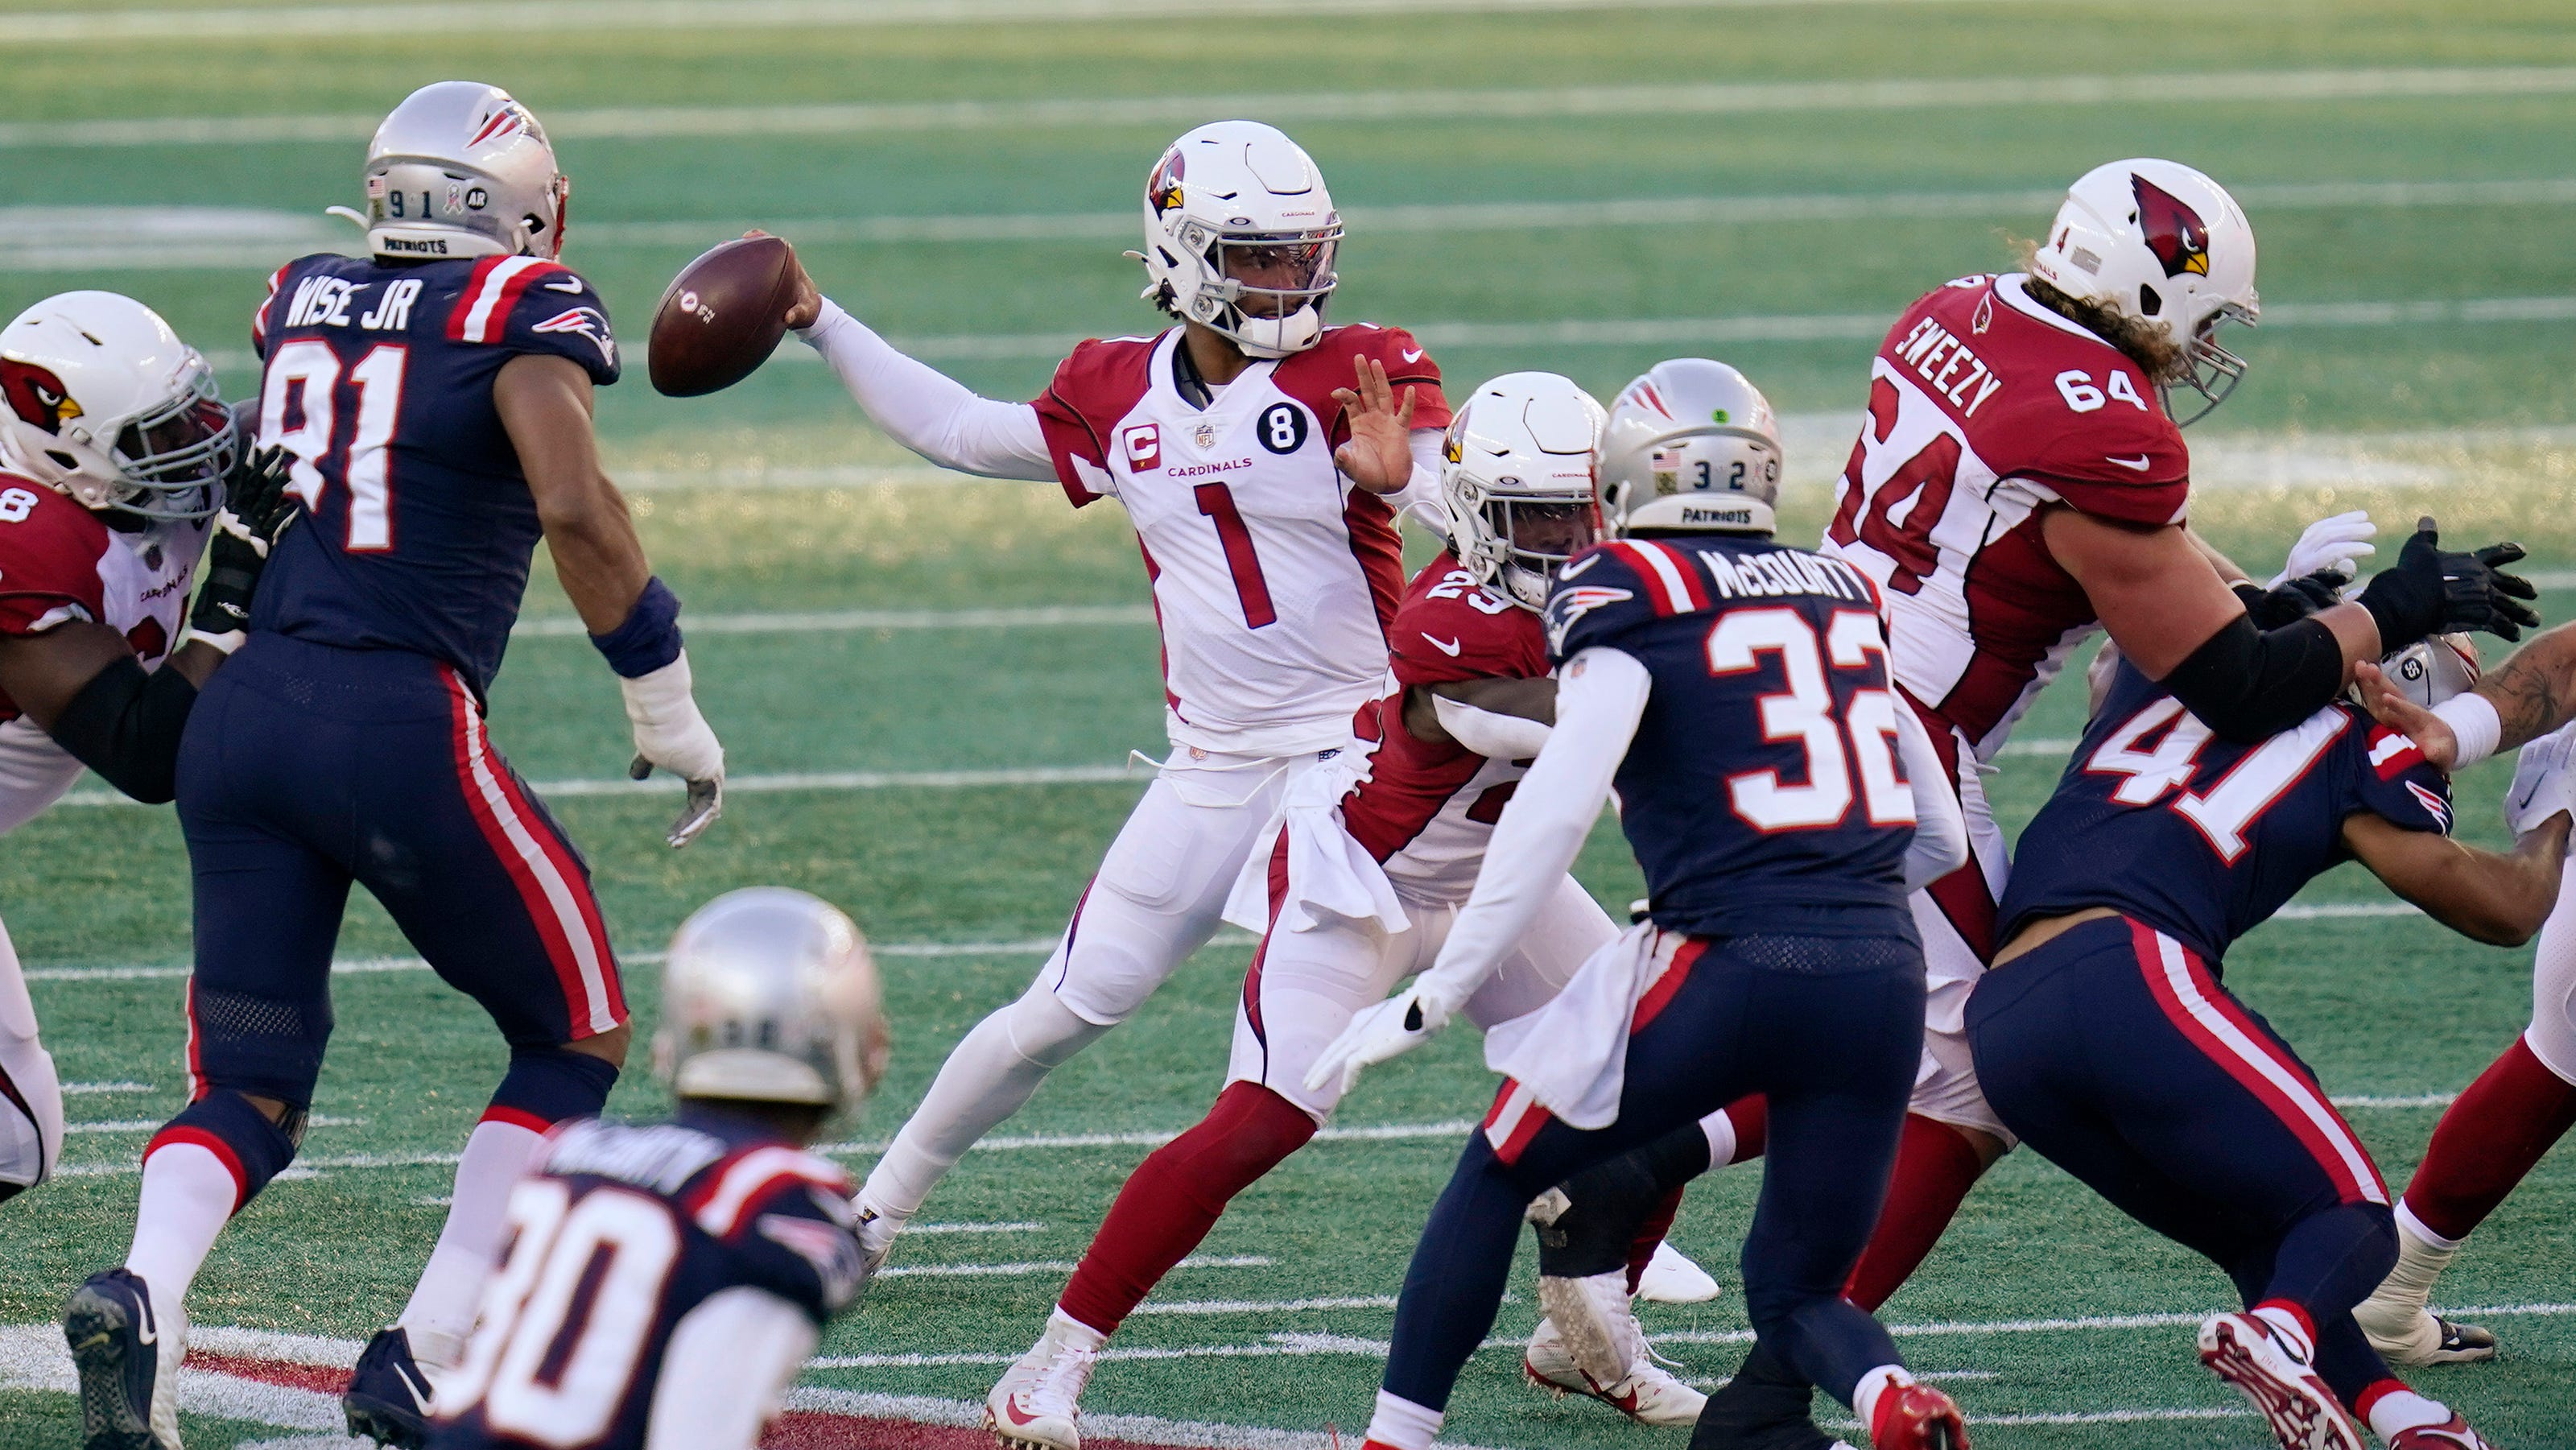 Cardinals lose 20-17 thanks to three key moments in 57 seconds